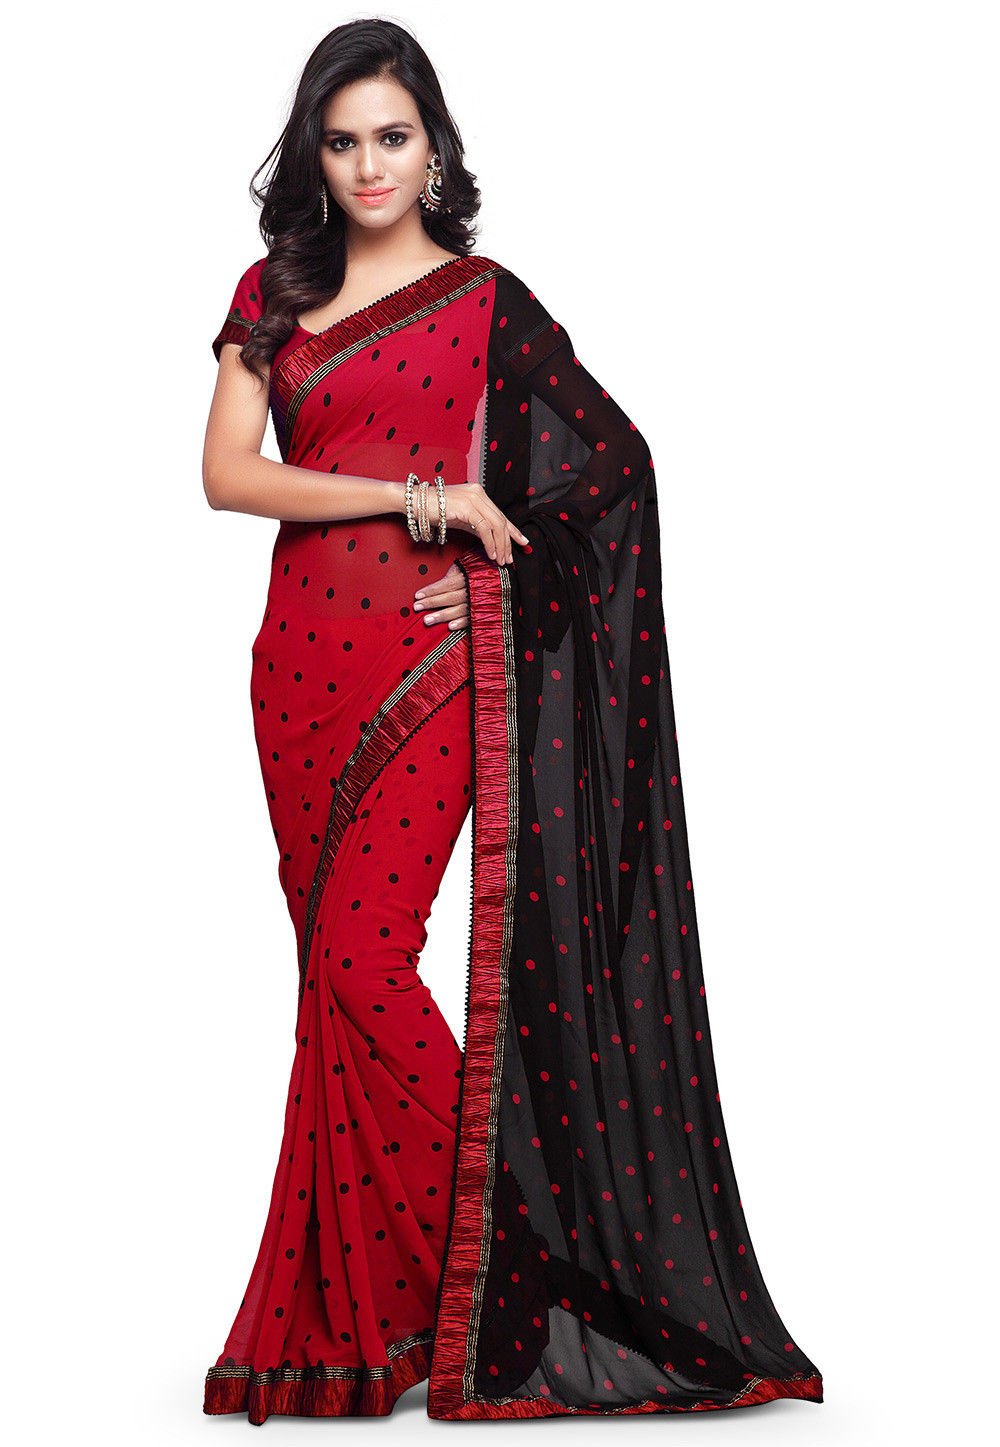 ef5e606bca8ff2 Printed Georgette Saree in Red and Black   SBH1655